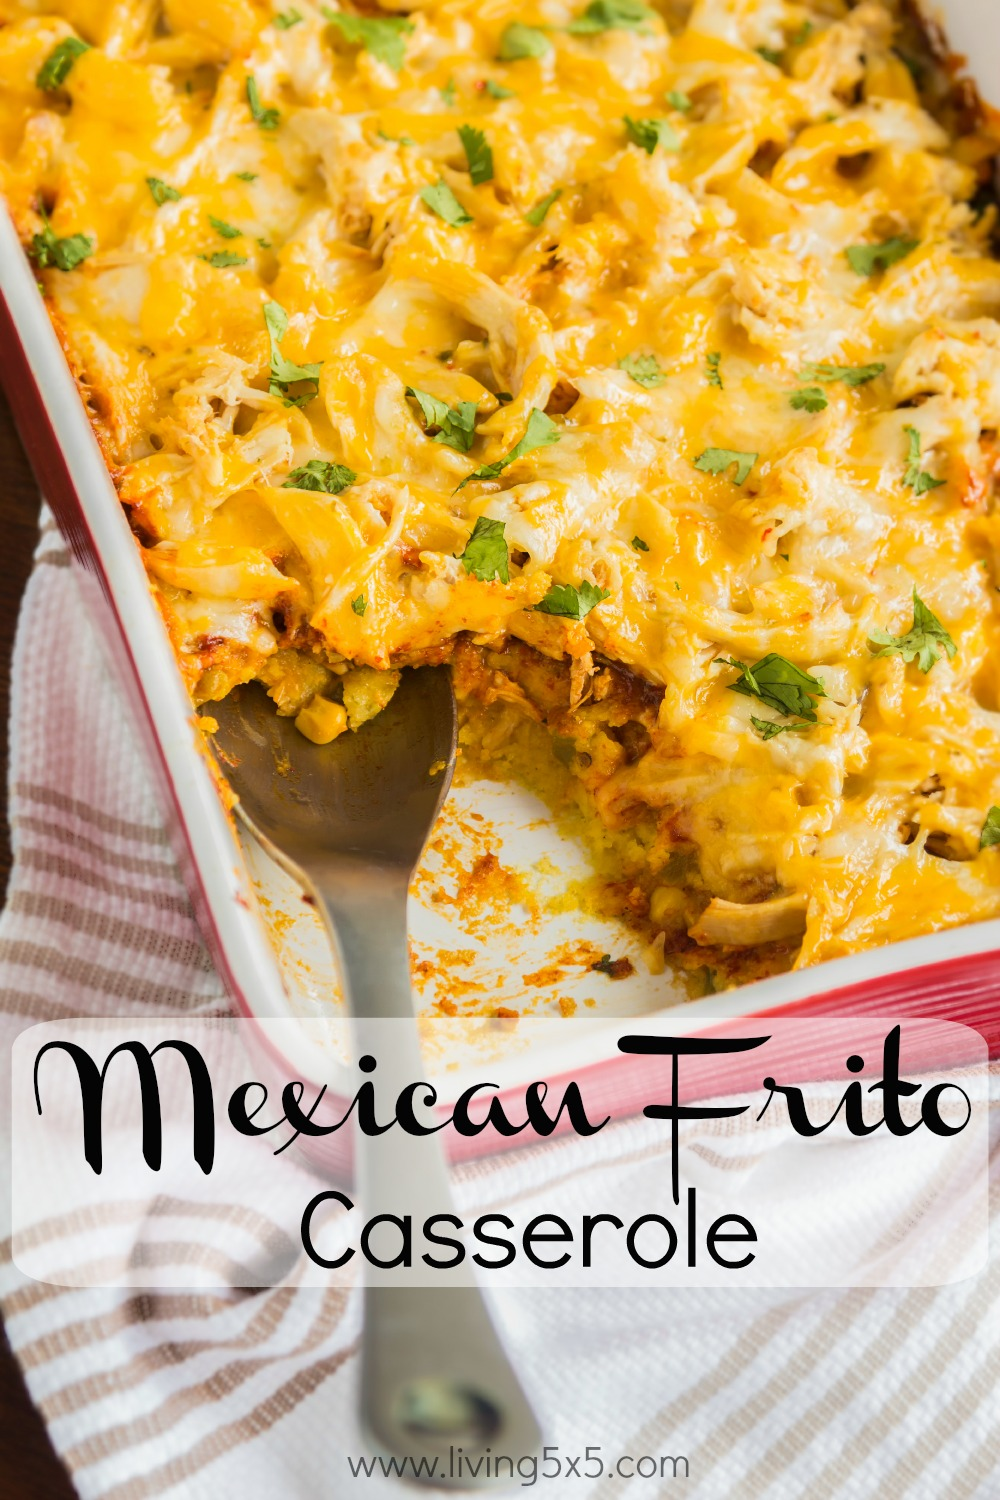 Feeling for something a little crunchy and filling at the same time? Try this Mexican Frito Casserole that will be sure to satisfy you!